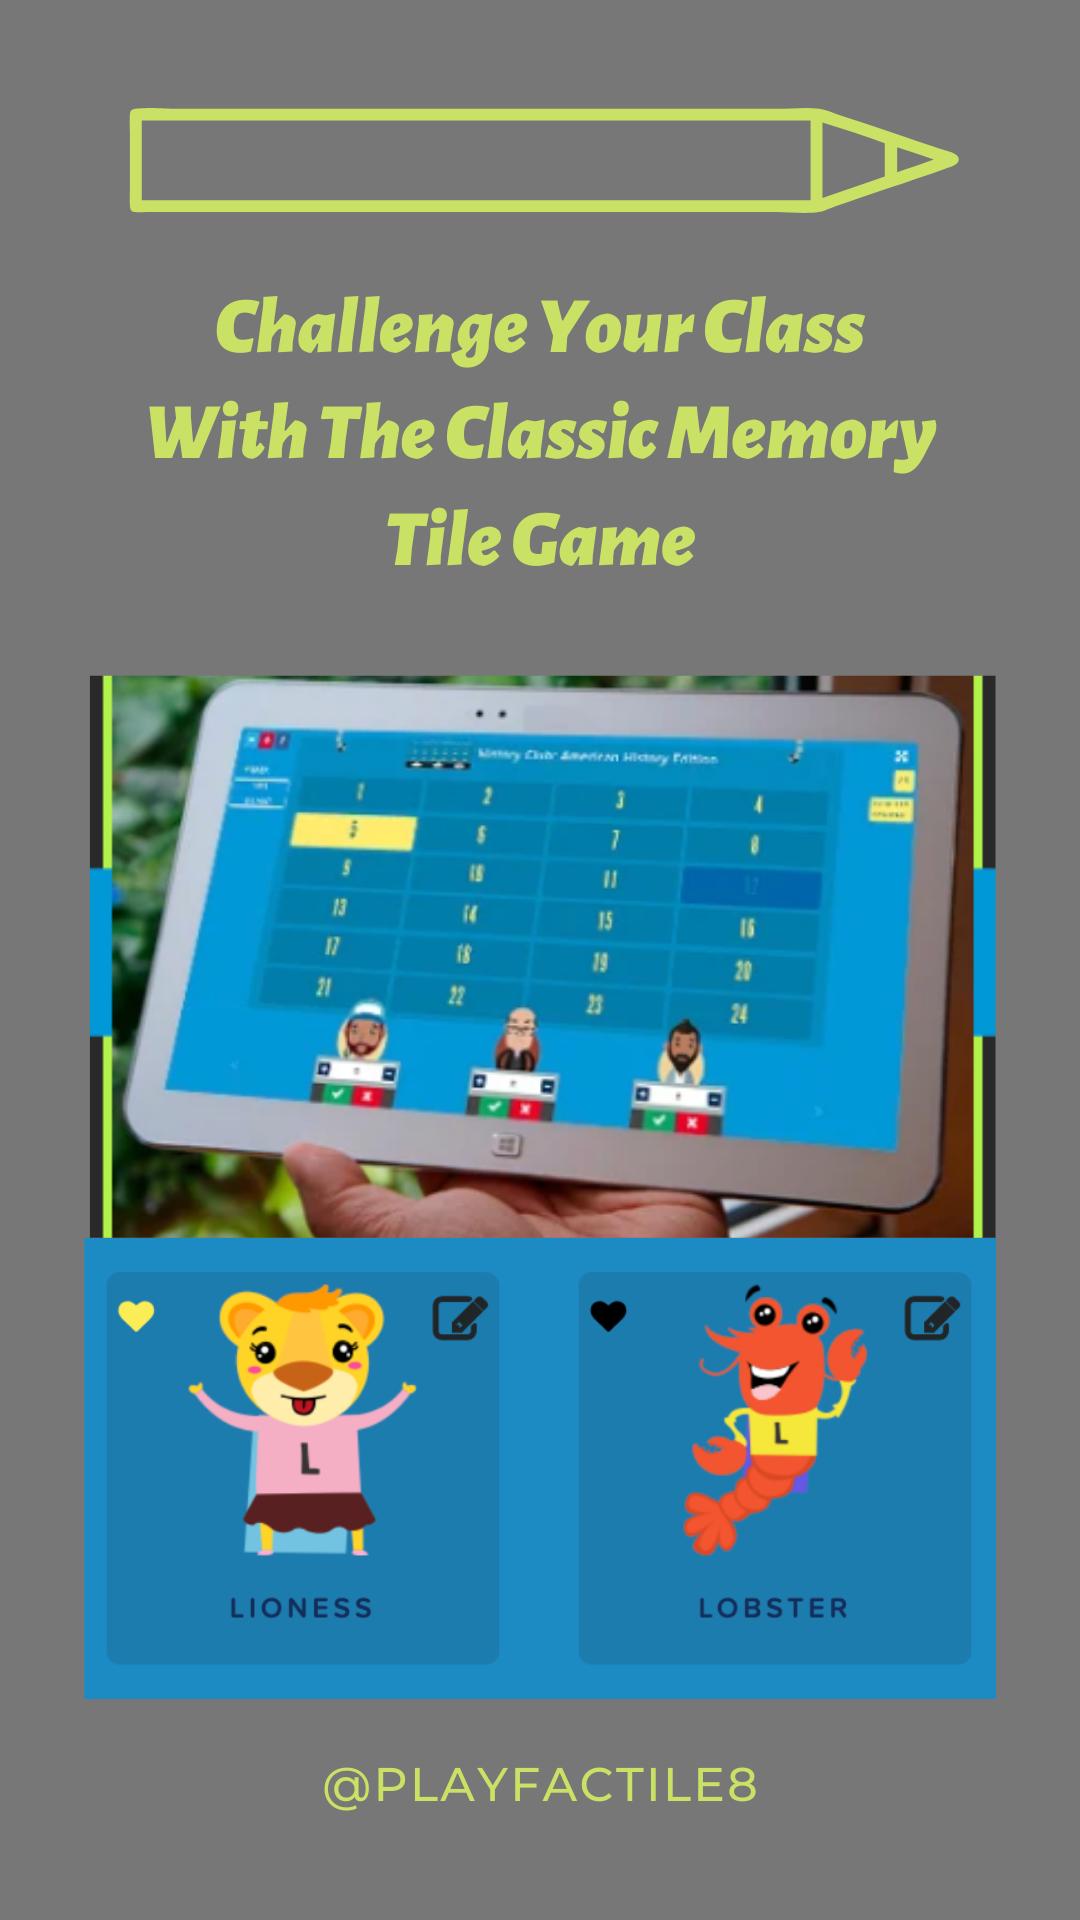 Challenge Your Class With The Classic Memory Tile Game in